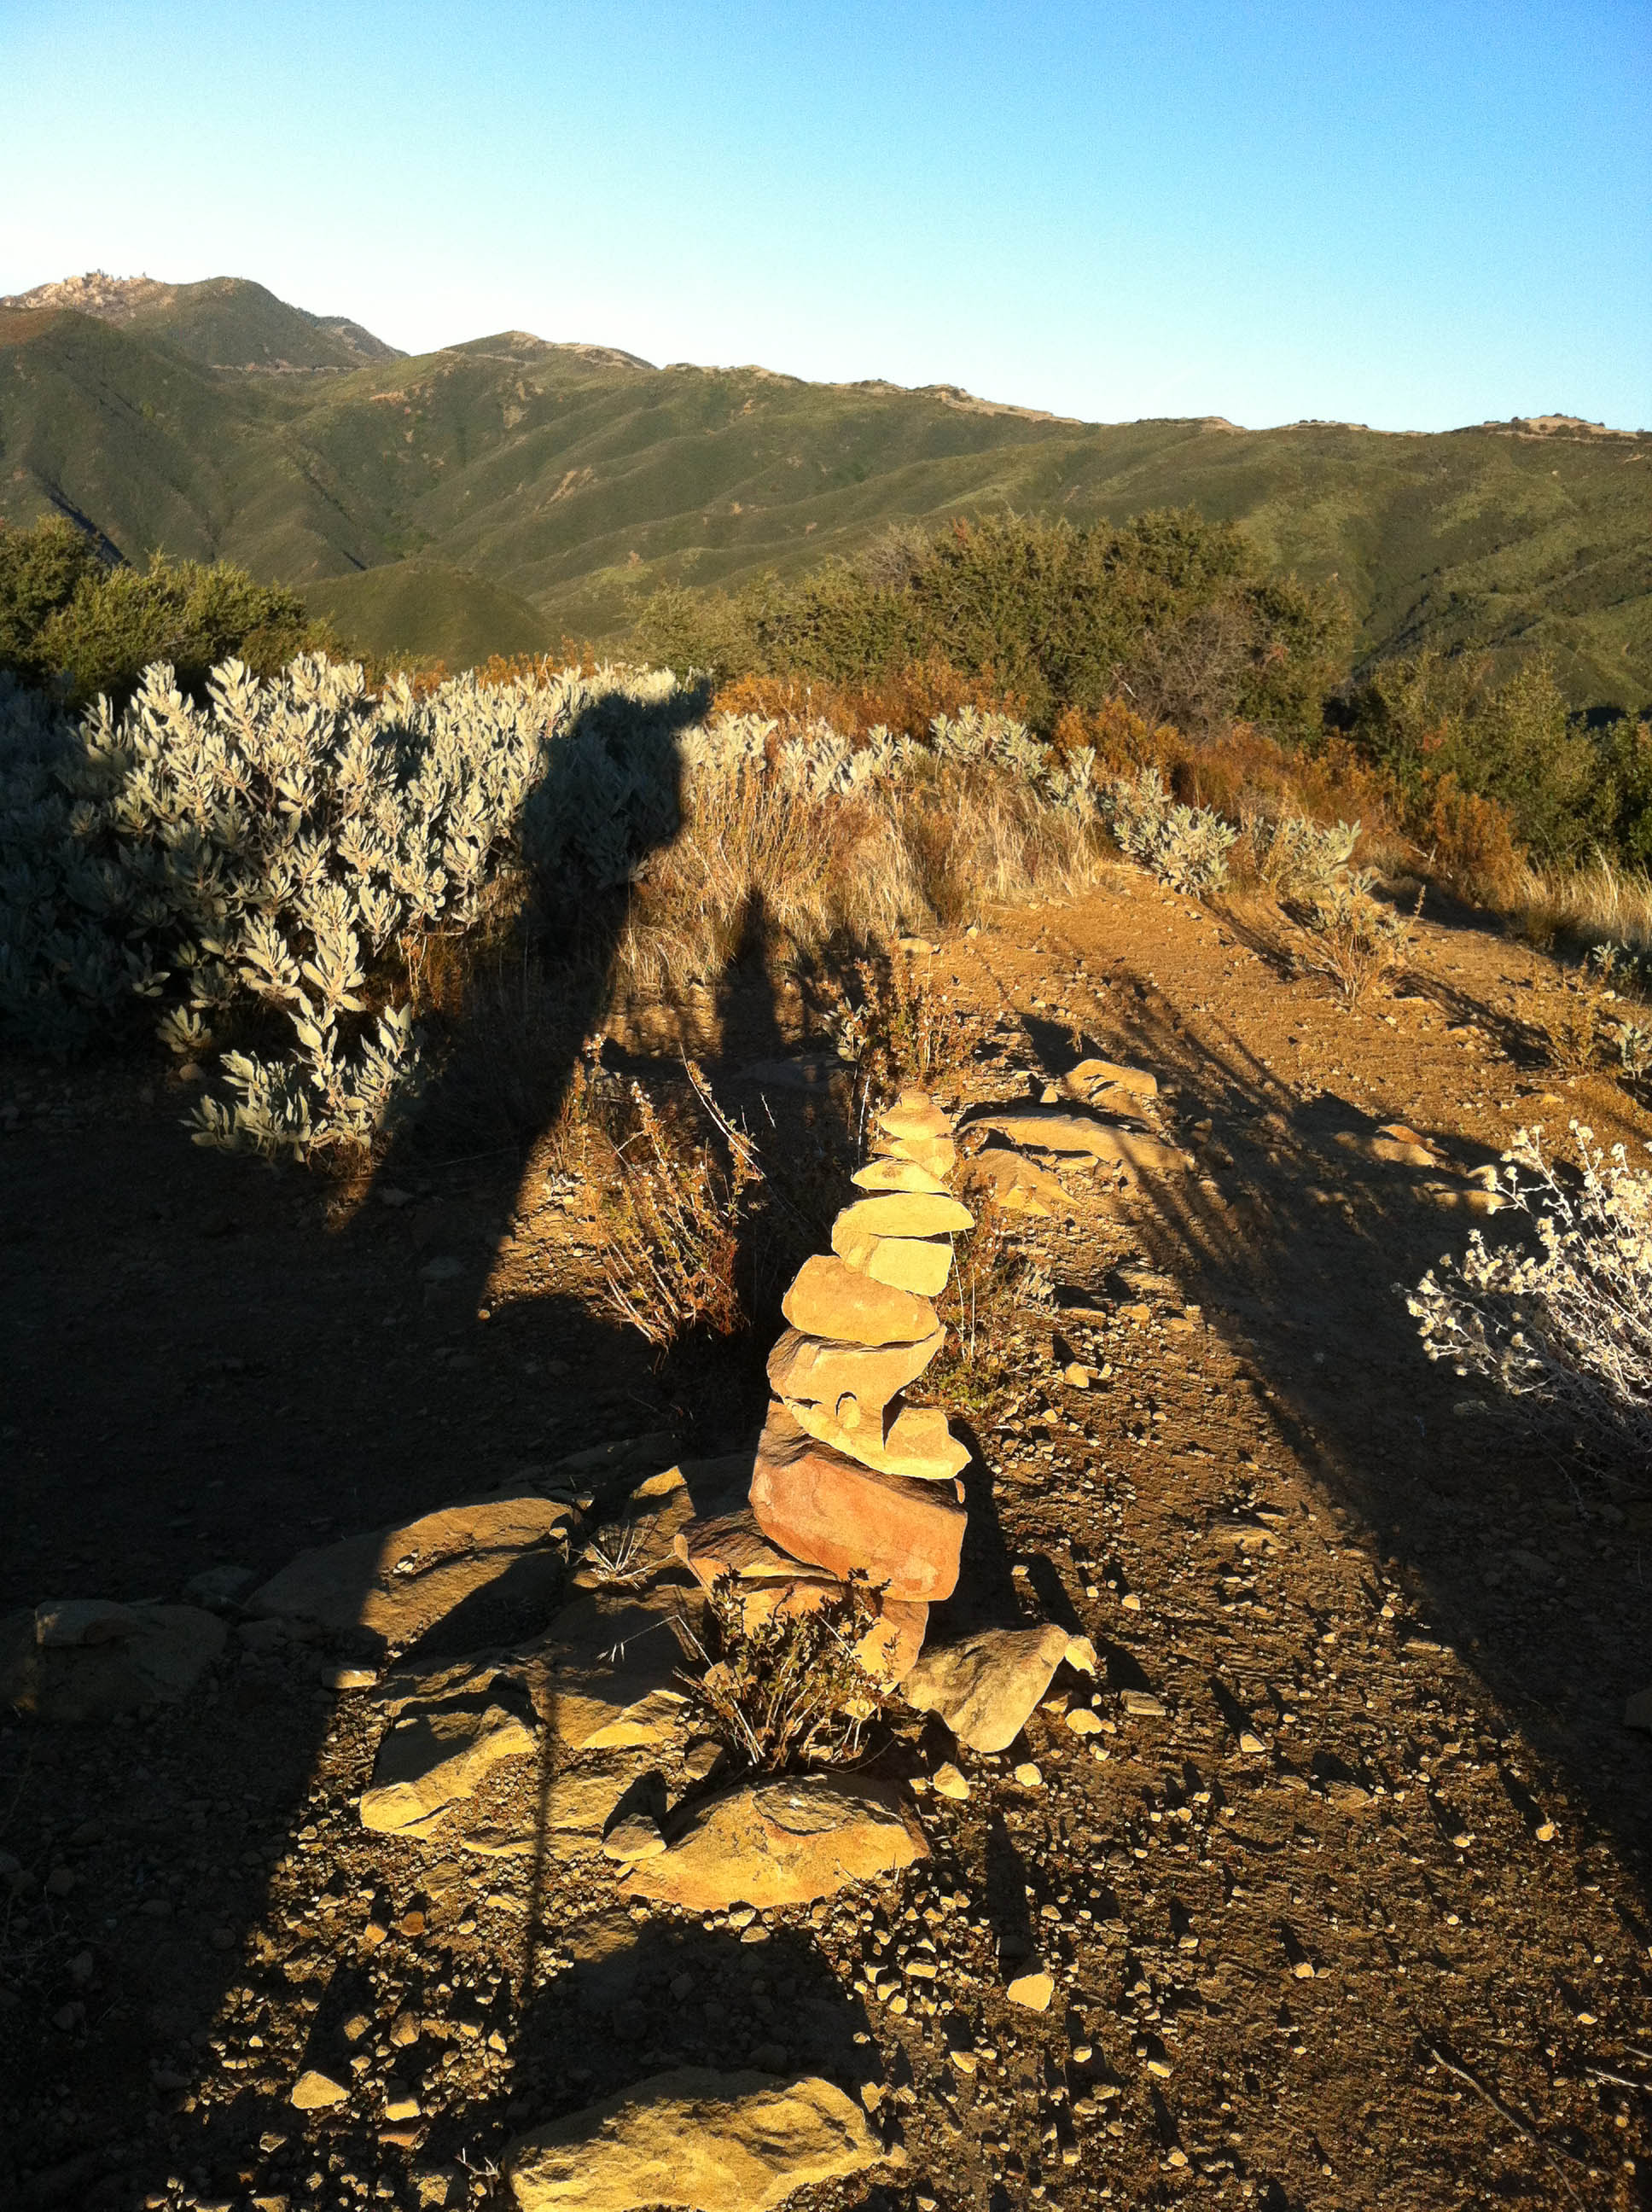 Cairn at the top of Montecito Peak